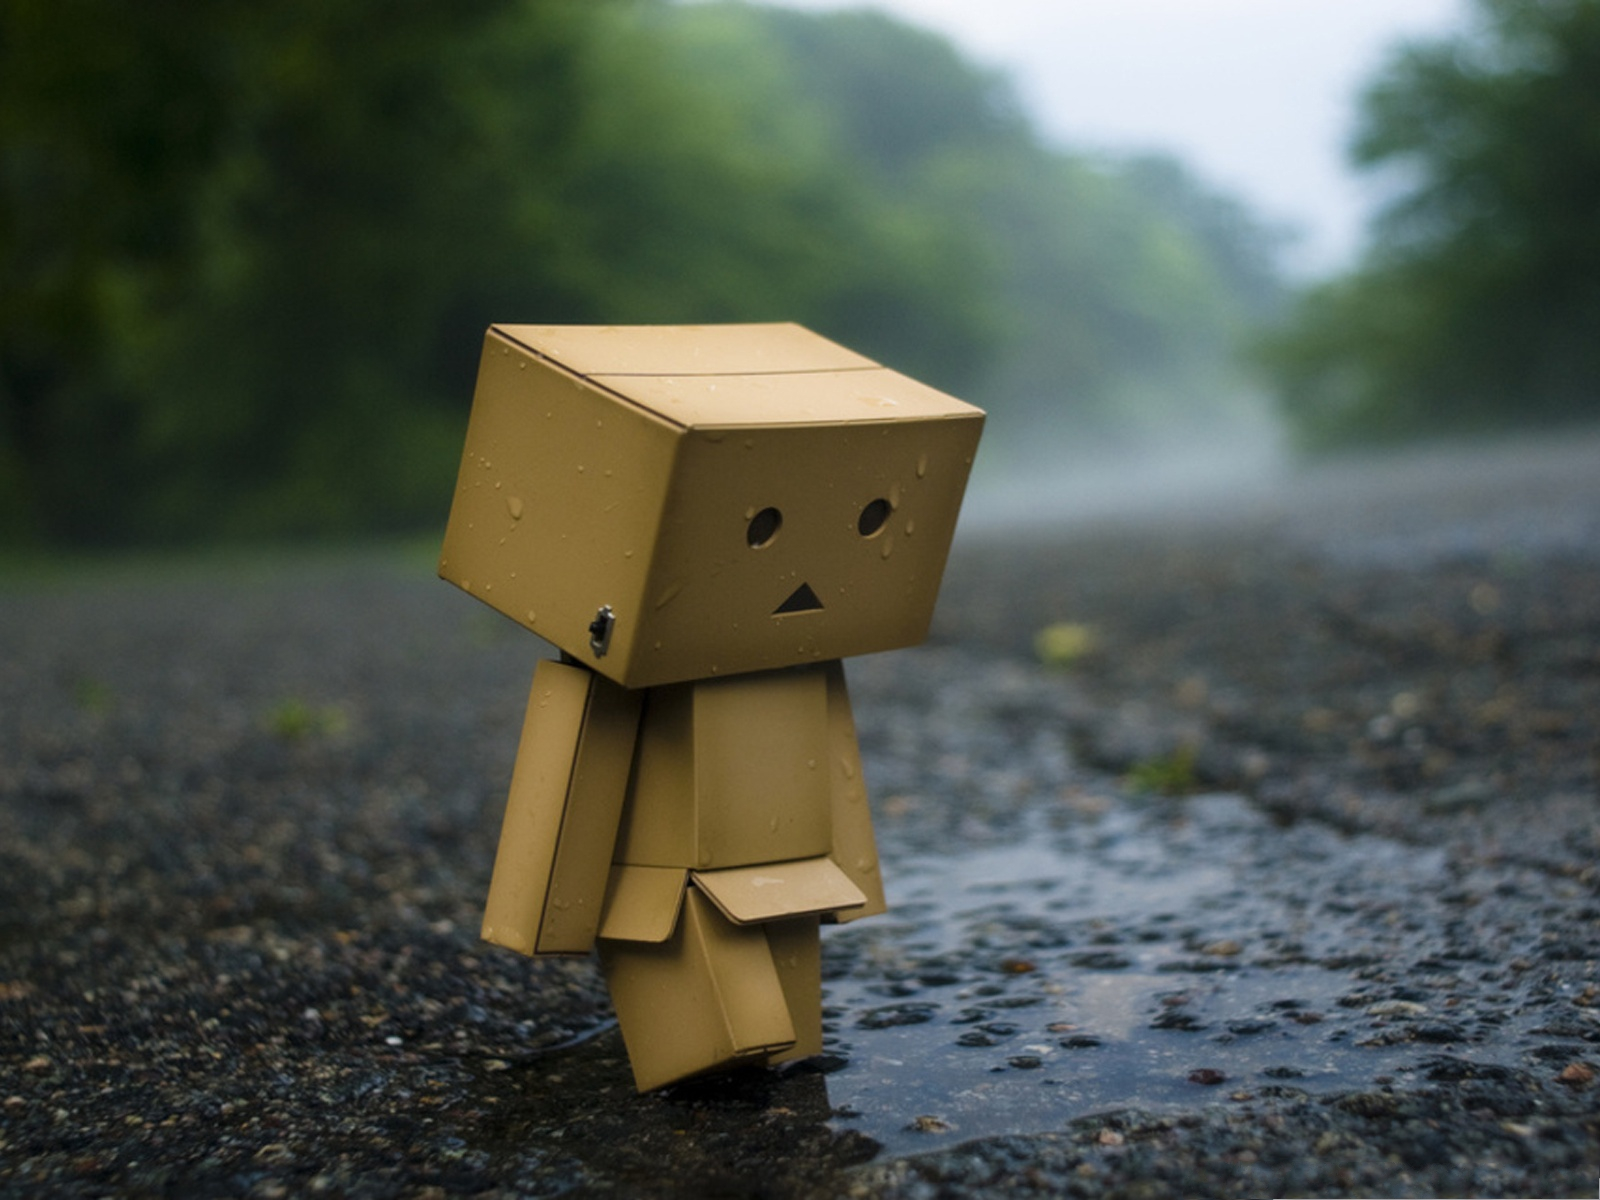 click to free download the wallpaper--Wallpaper for Desktop Computer, Lonely Boxman, Is Wet Body for the Rain or Crying? 1600X1200 free wallpaper download